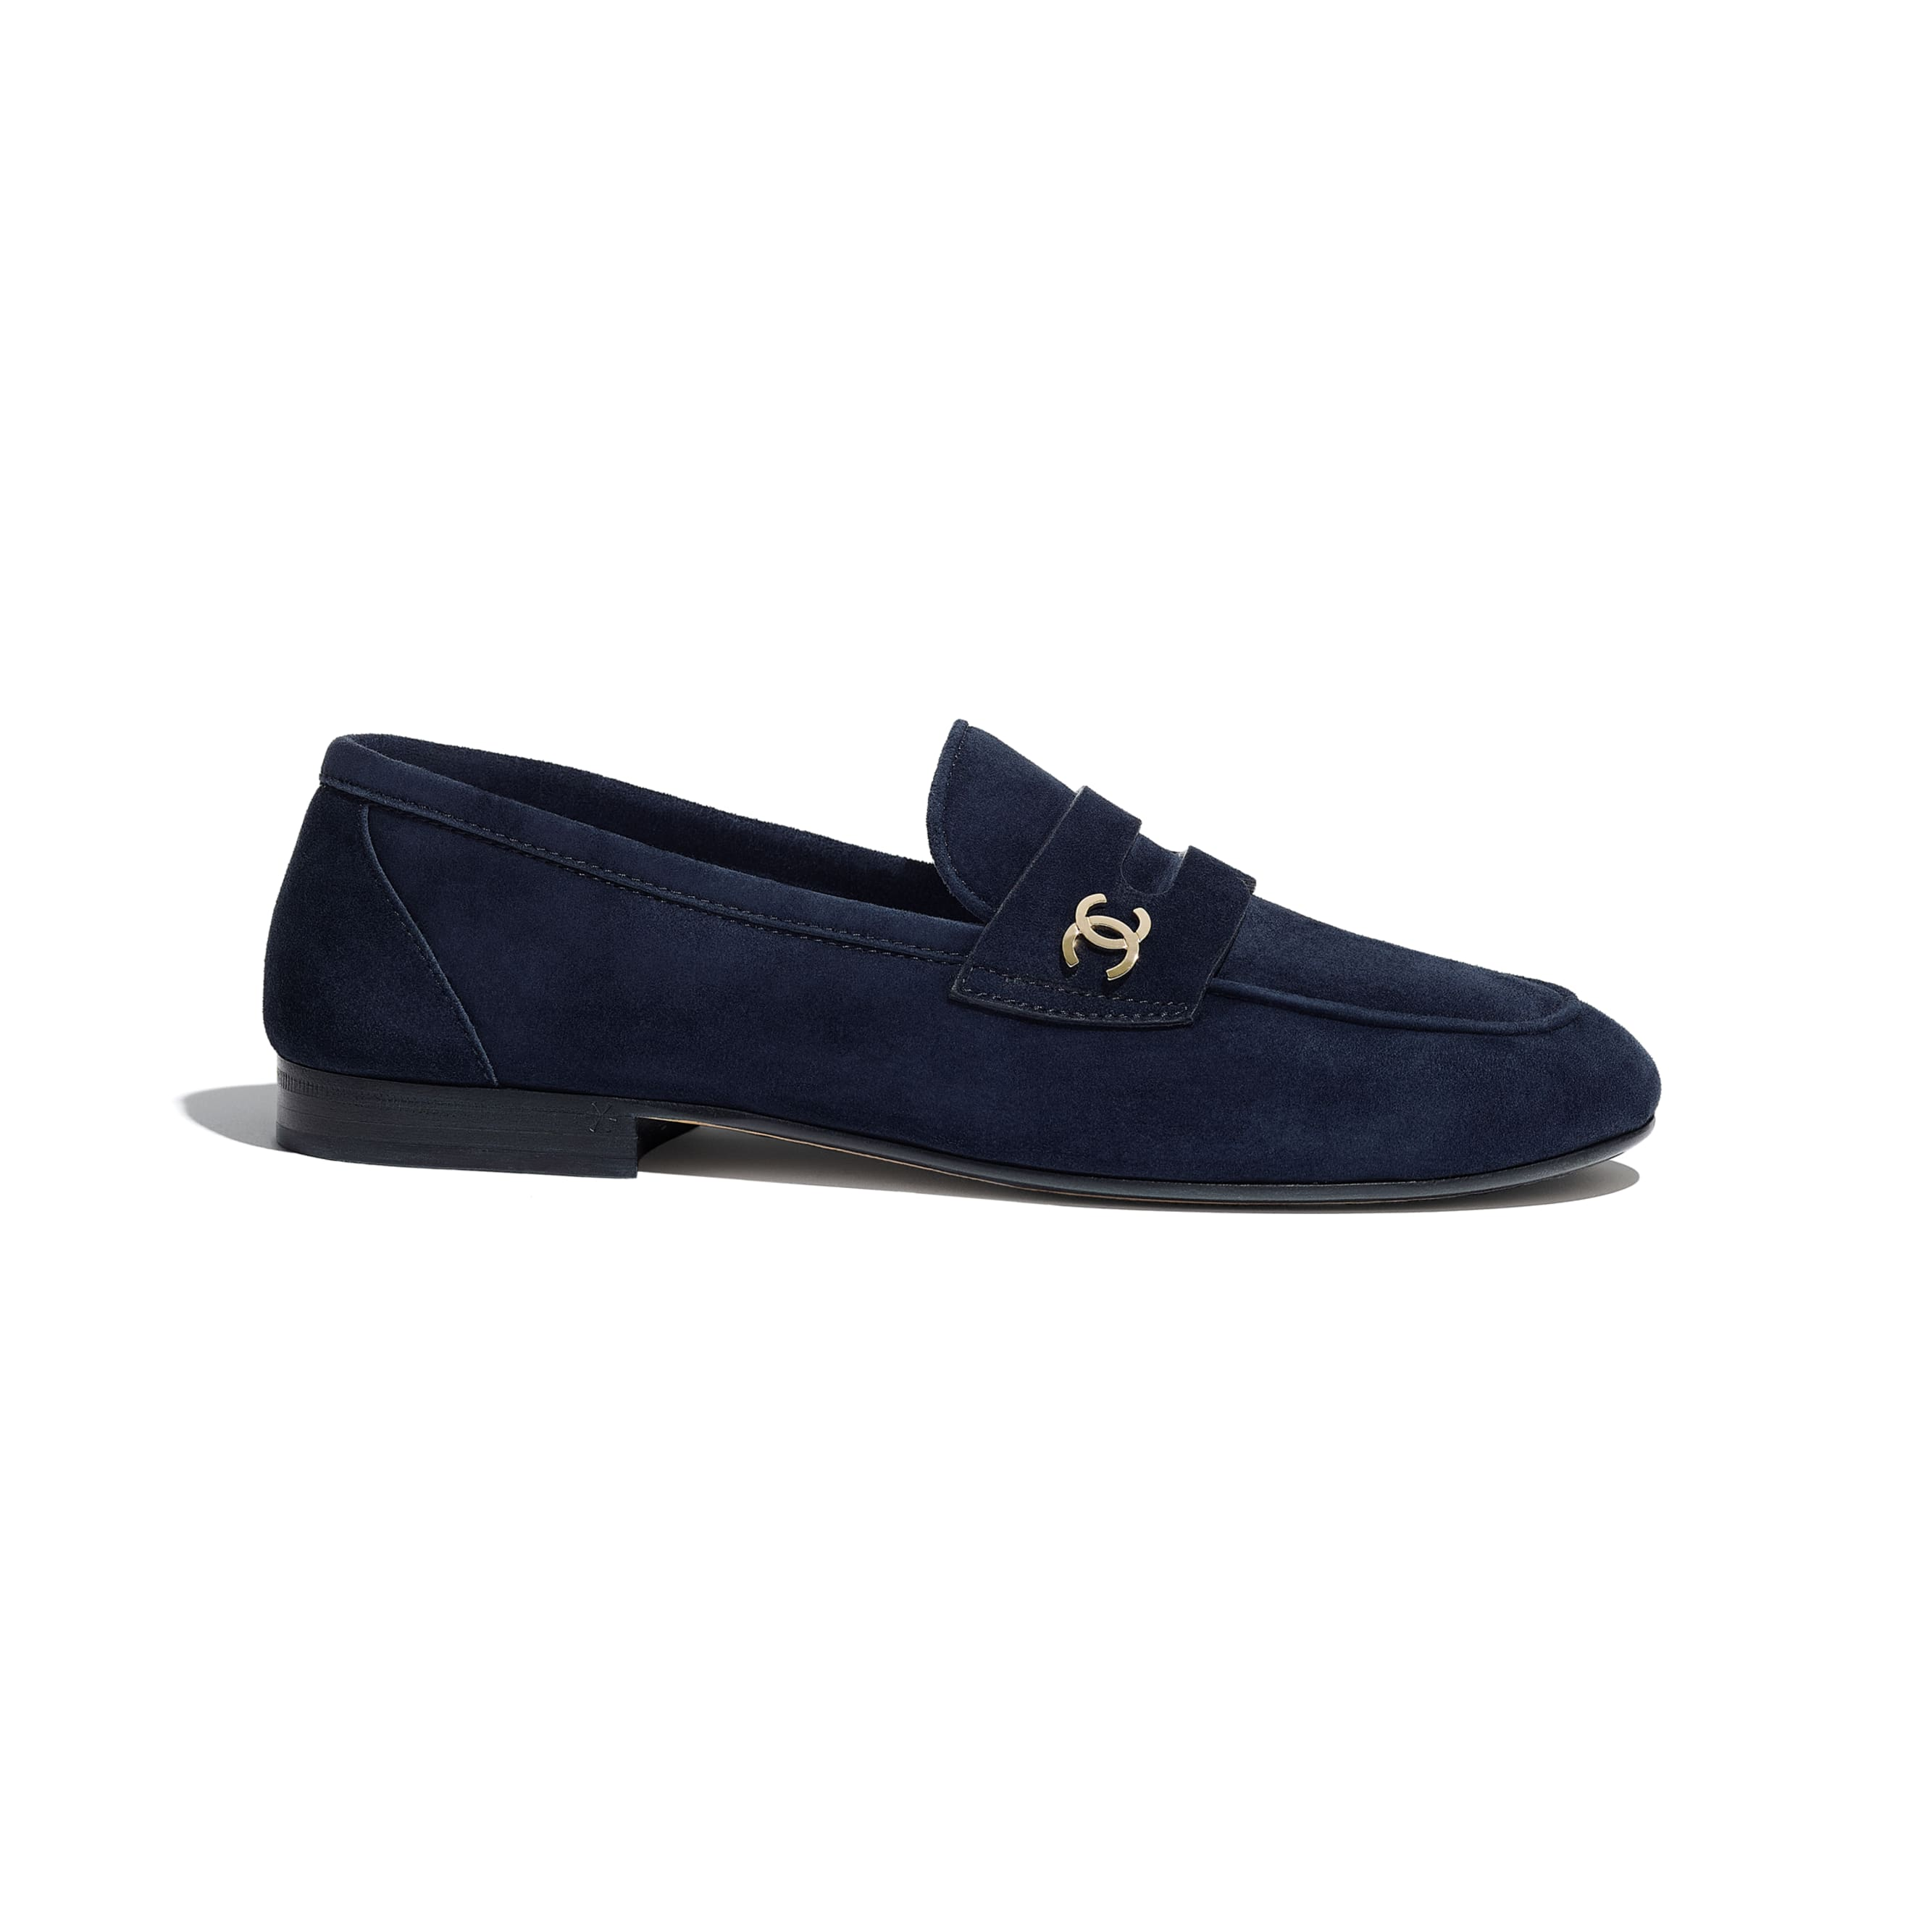 Loafers - Navy Blue - Suede Calfskin - CHANEL - Default view - see standard sized version